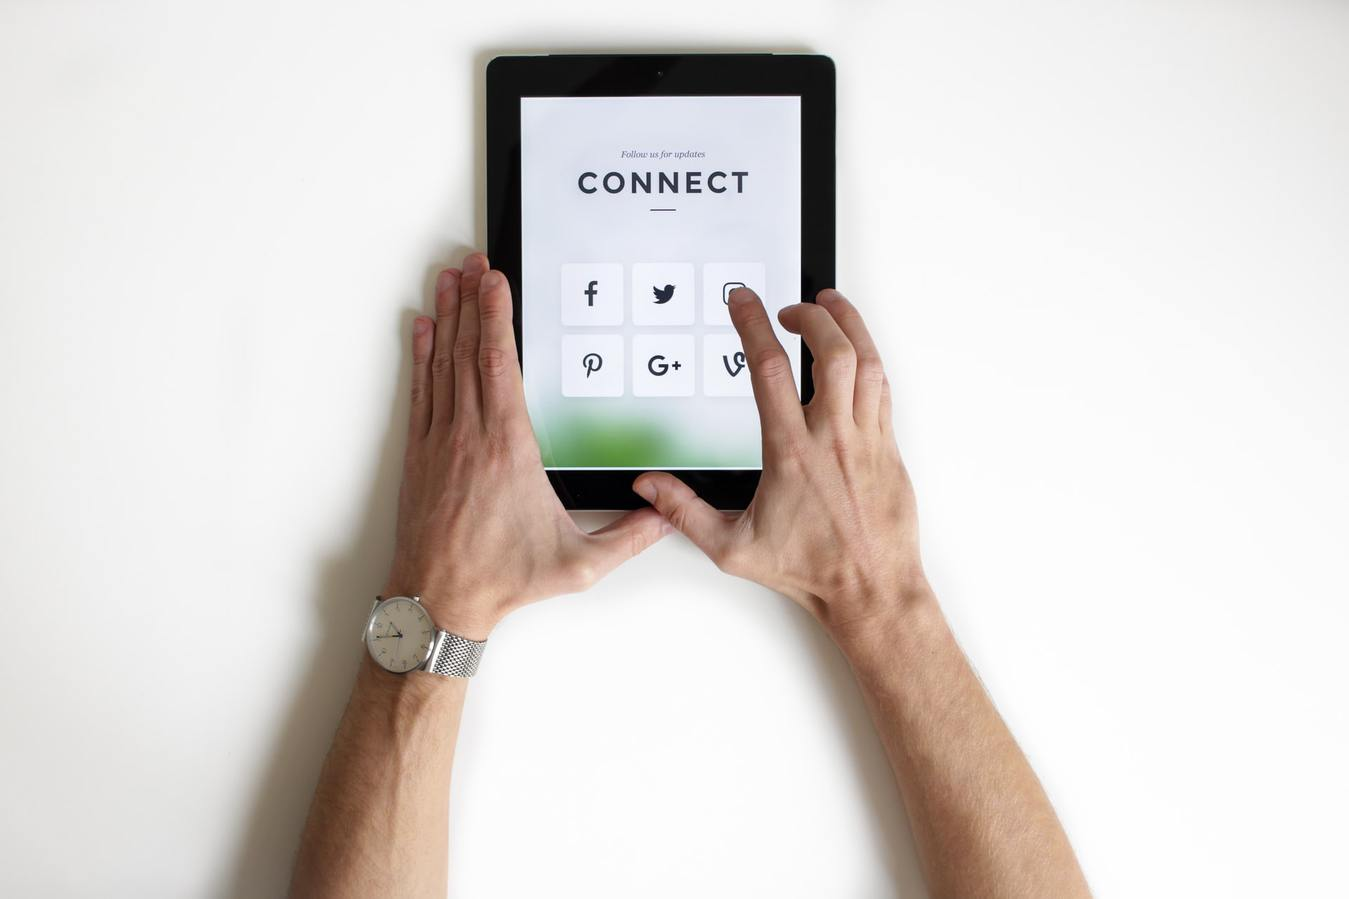 A person holding a tablet that spells out connect against a white background